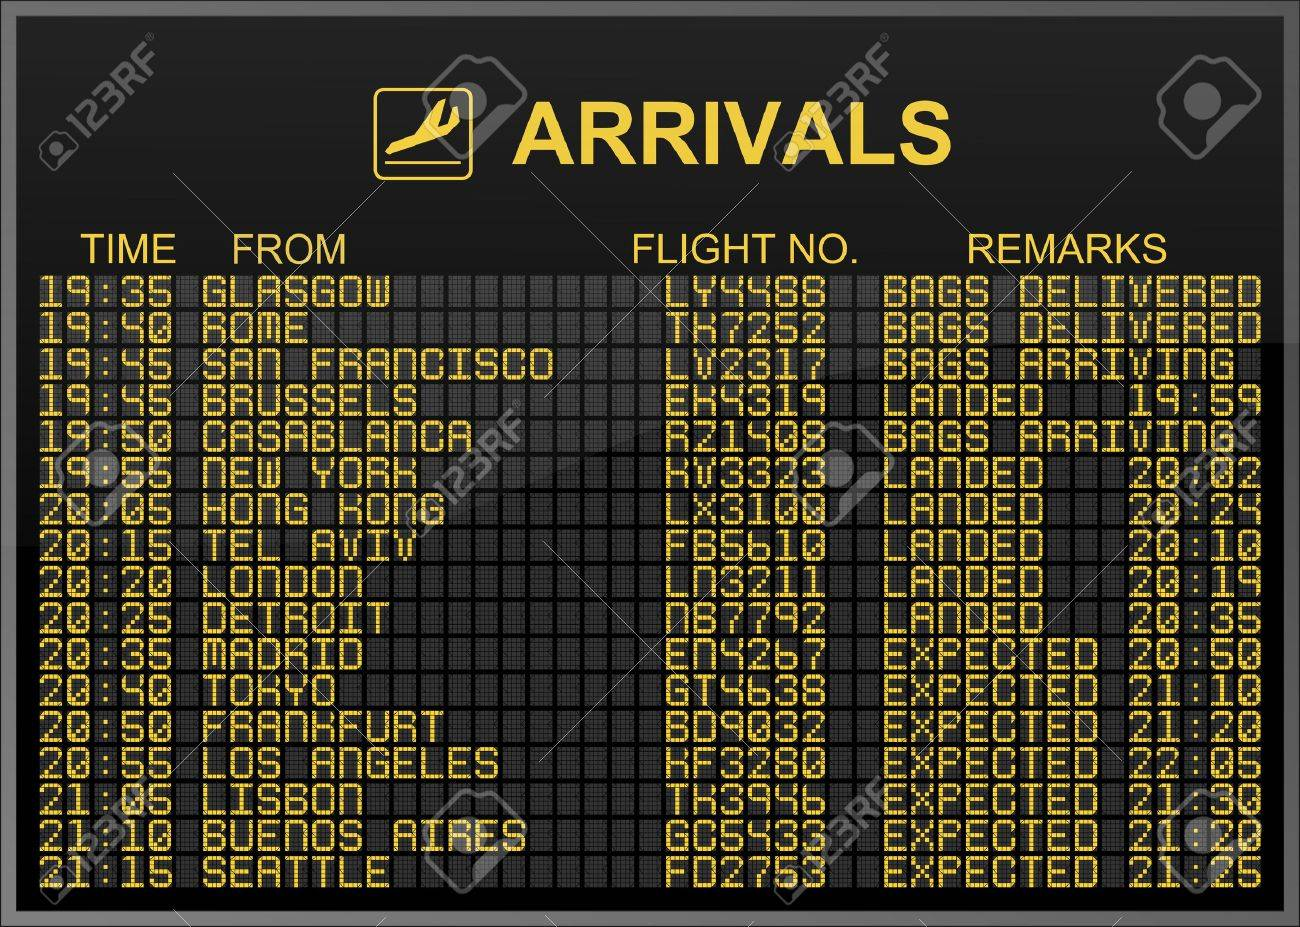 International Airport Arrivals Board Stock Photo - 5021783